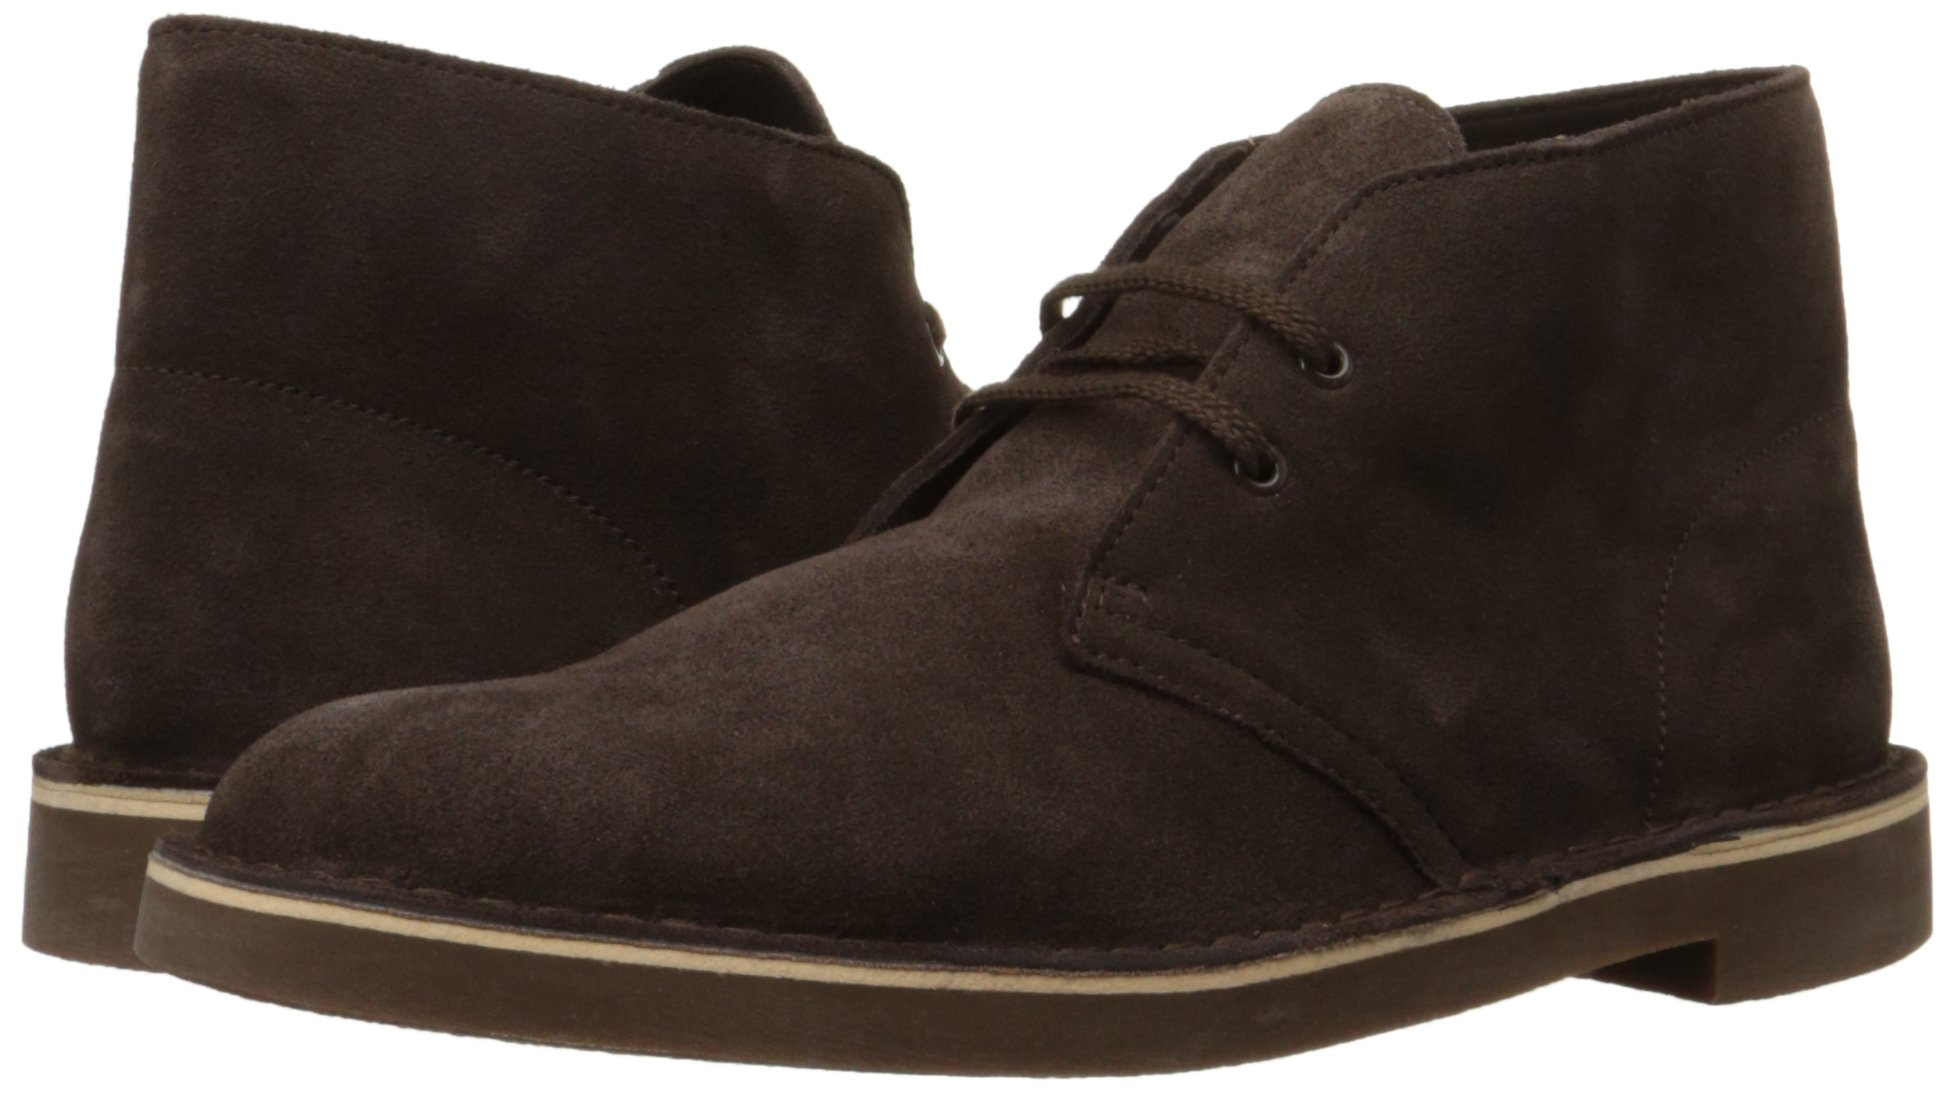 Clarks Men's Bushacre 2 Chukka Boot,Brown Suede,13 M US by CLARKS (Image #6)